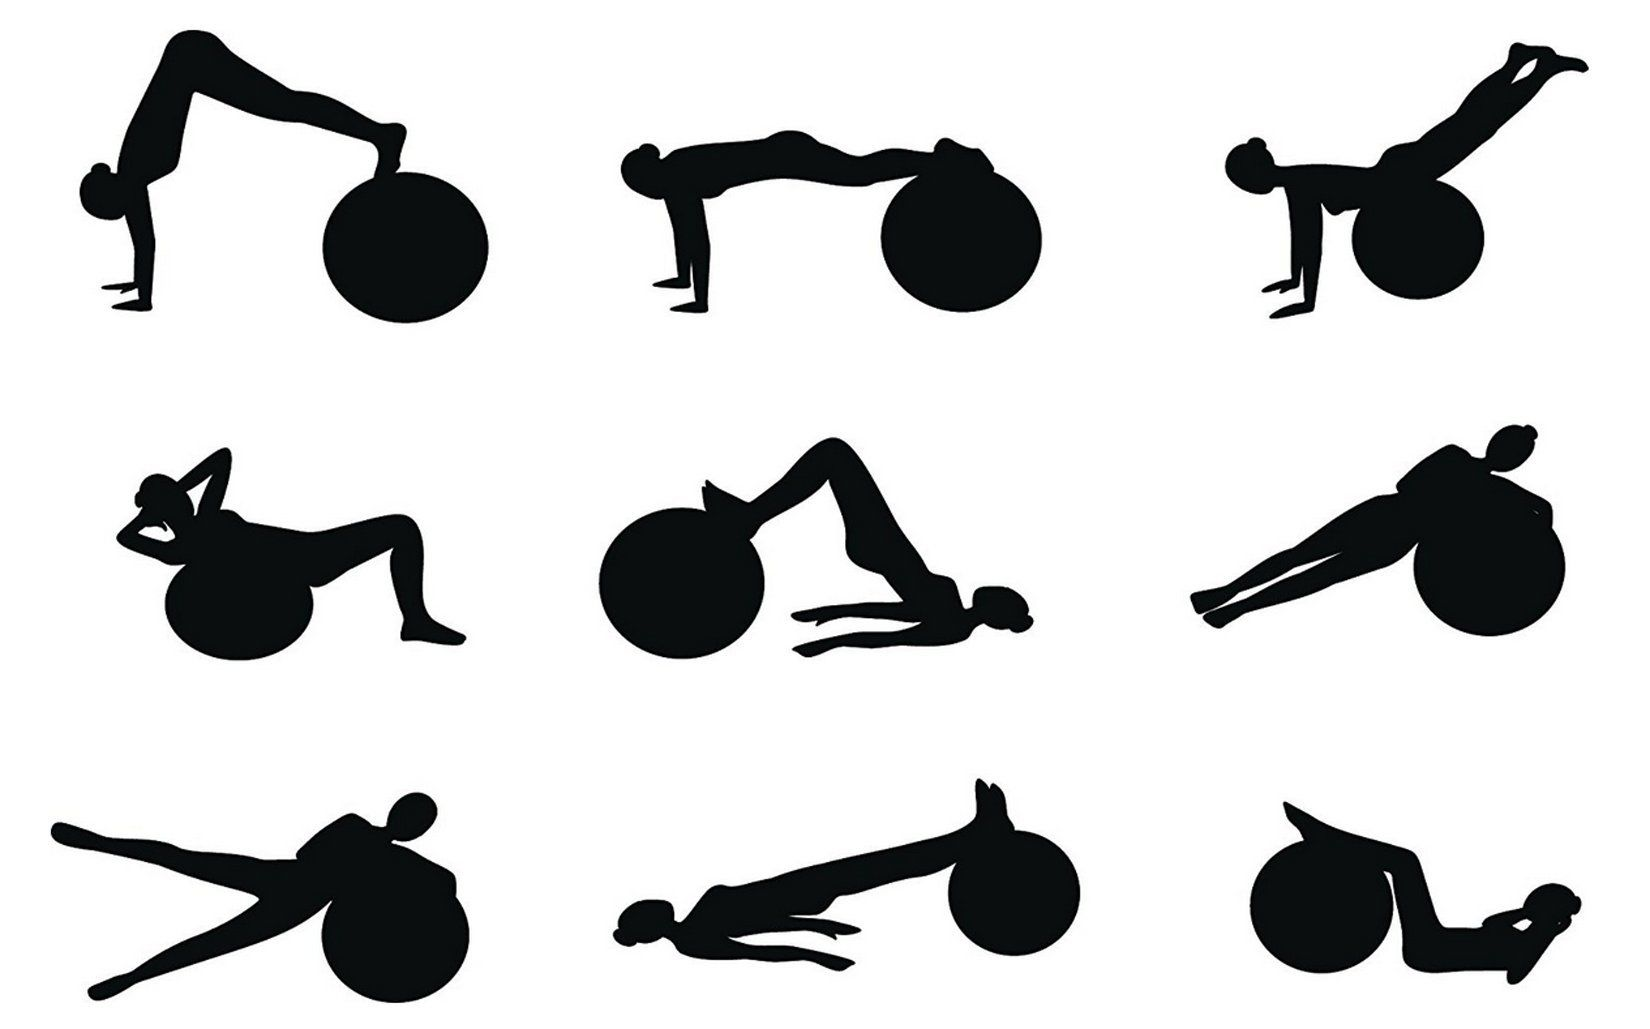 DHSUIU Fitness Exercise Stability and Yoga Ball with Pump